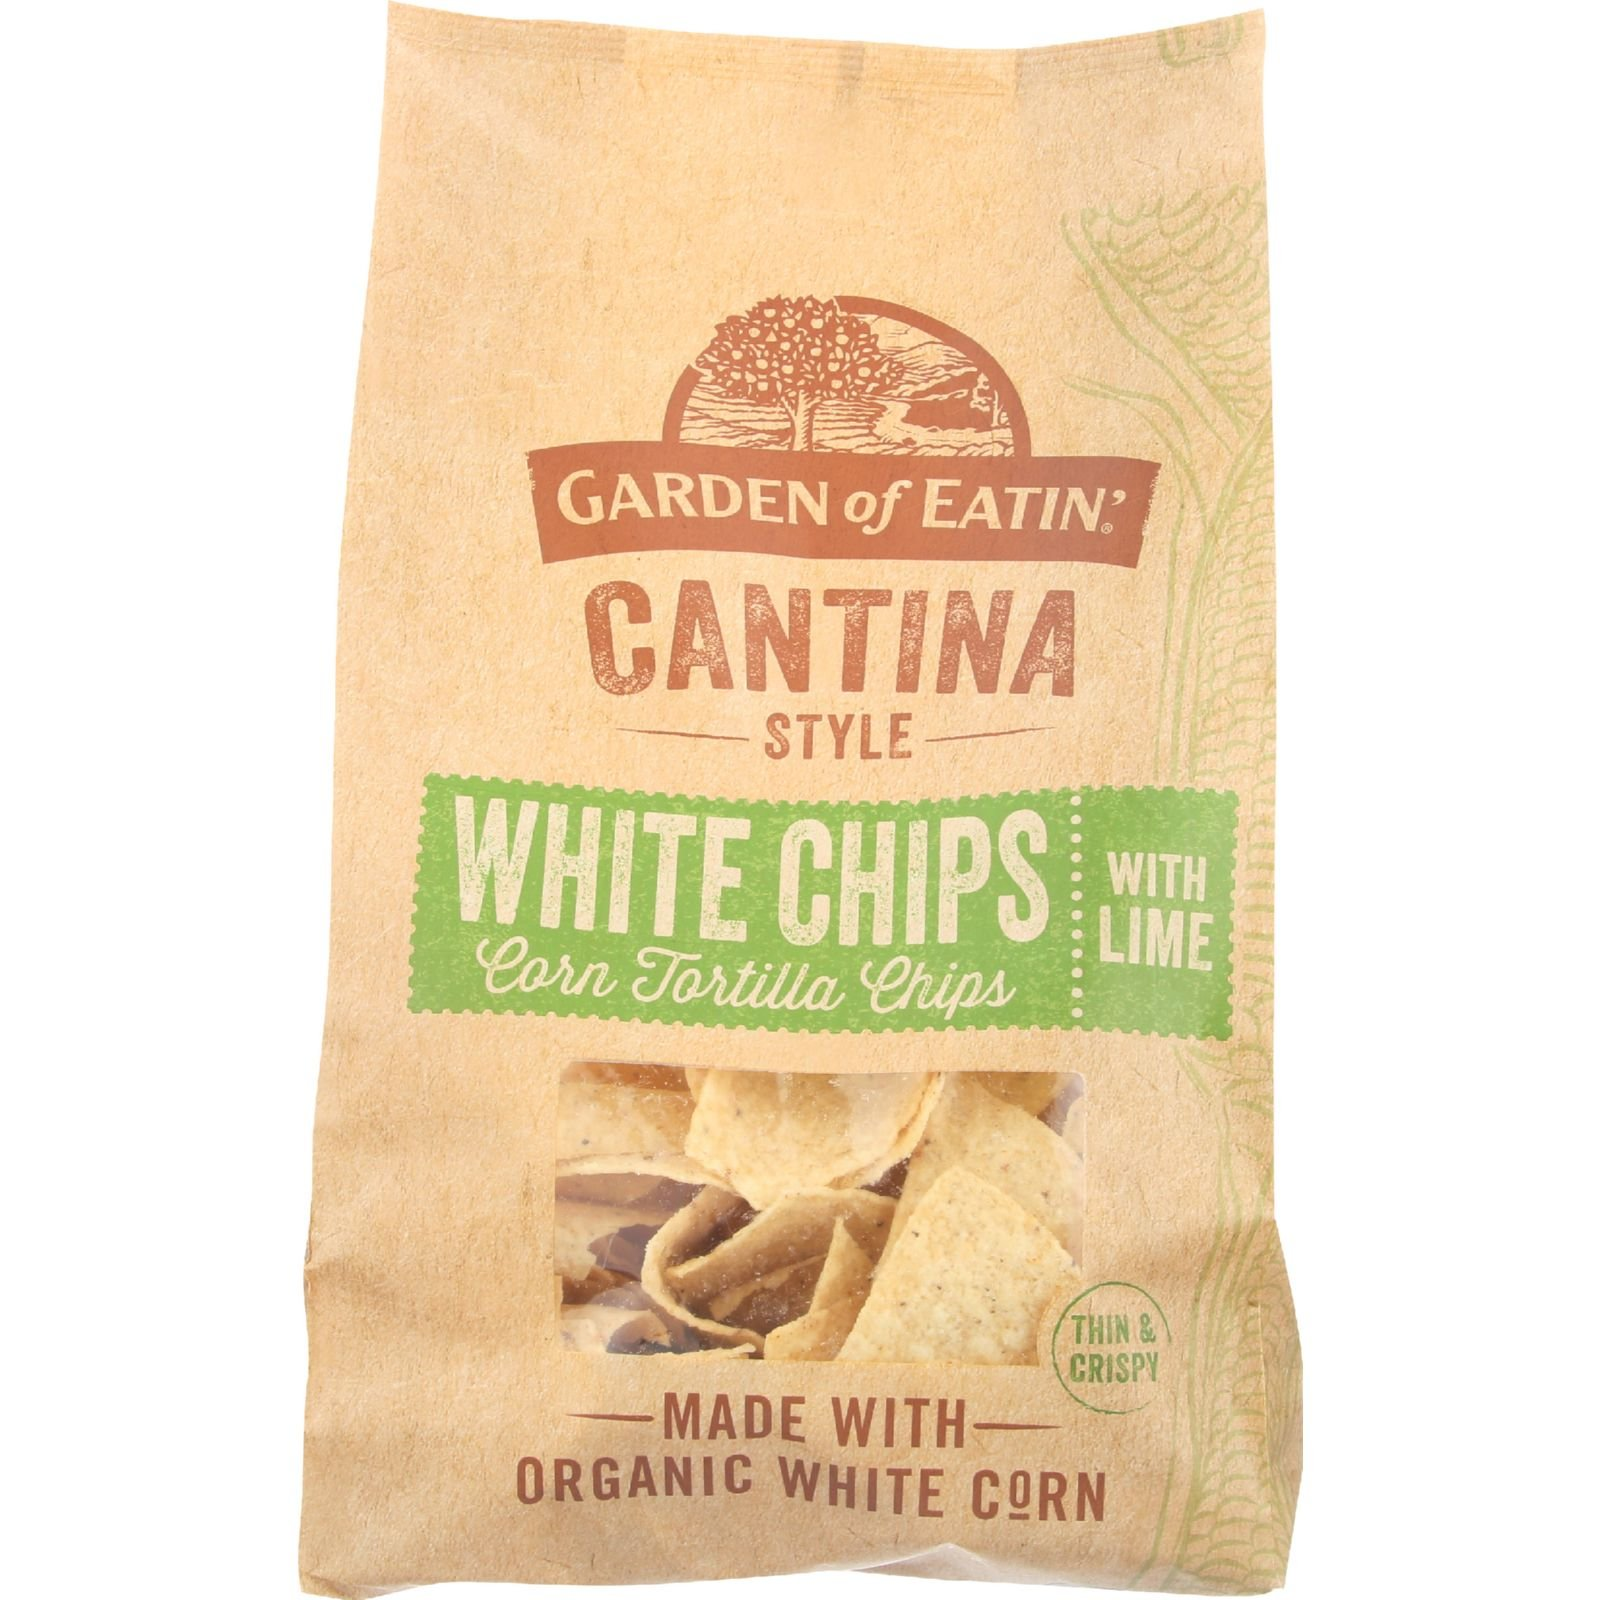 Garden Of Eatin Tortilla Chips - Organic - Cantina Style White Chips with Lime - White Corn - 13 oz - case of 10 - Gluten Free